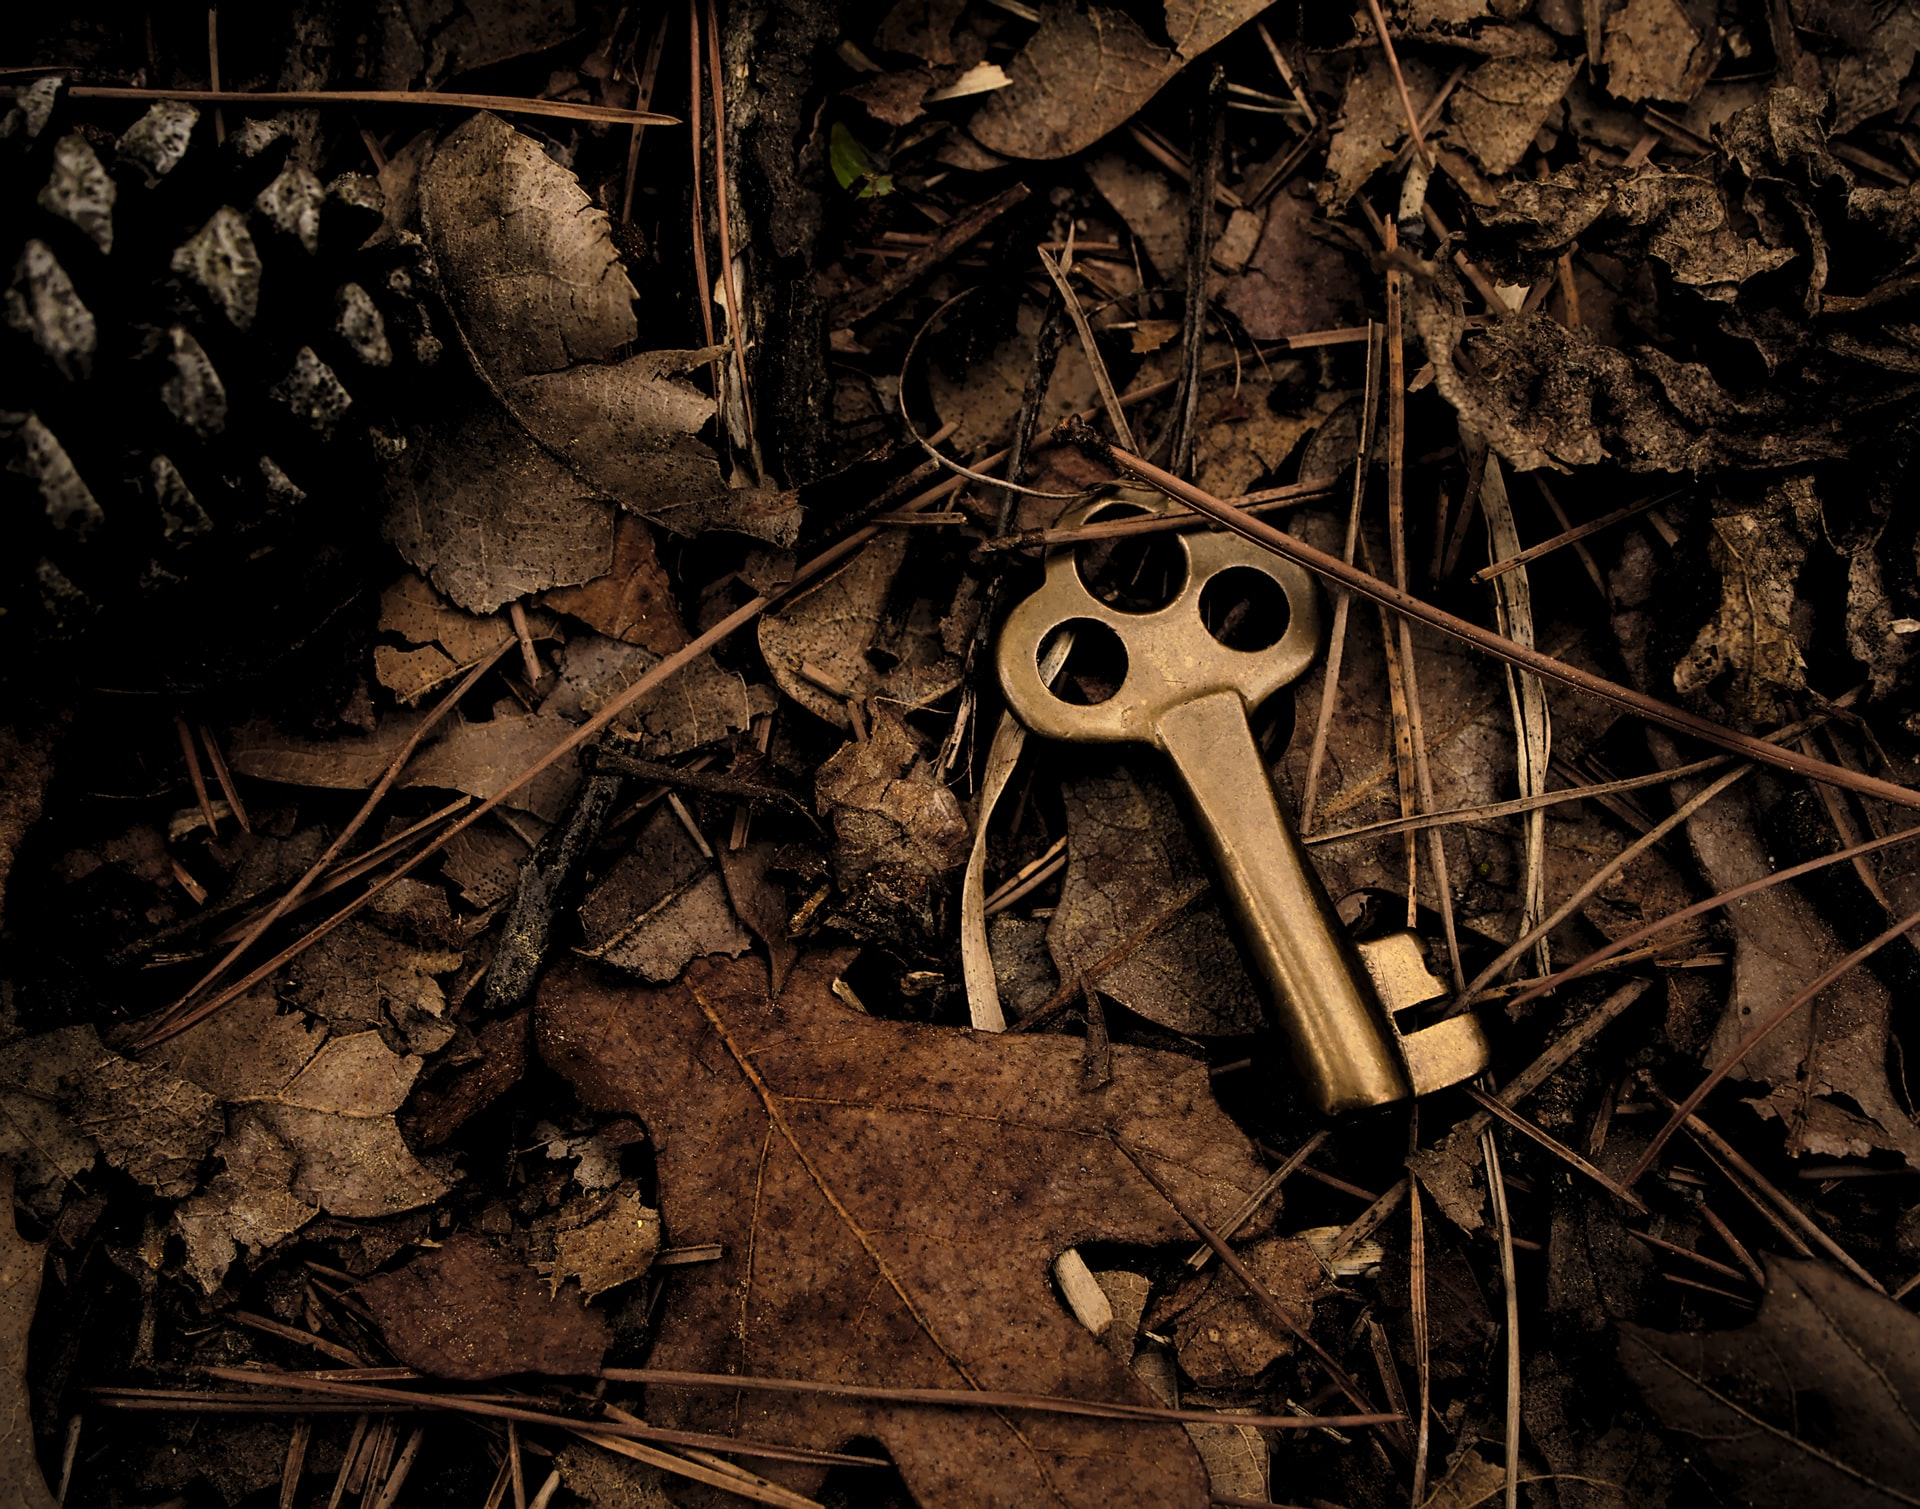 A brass key laying on dried leaves and twigs